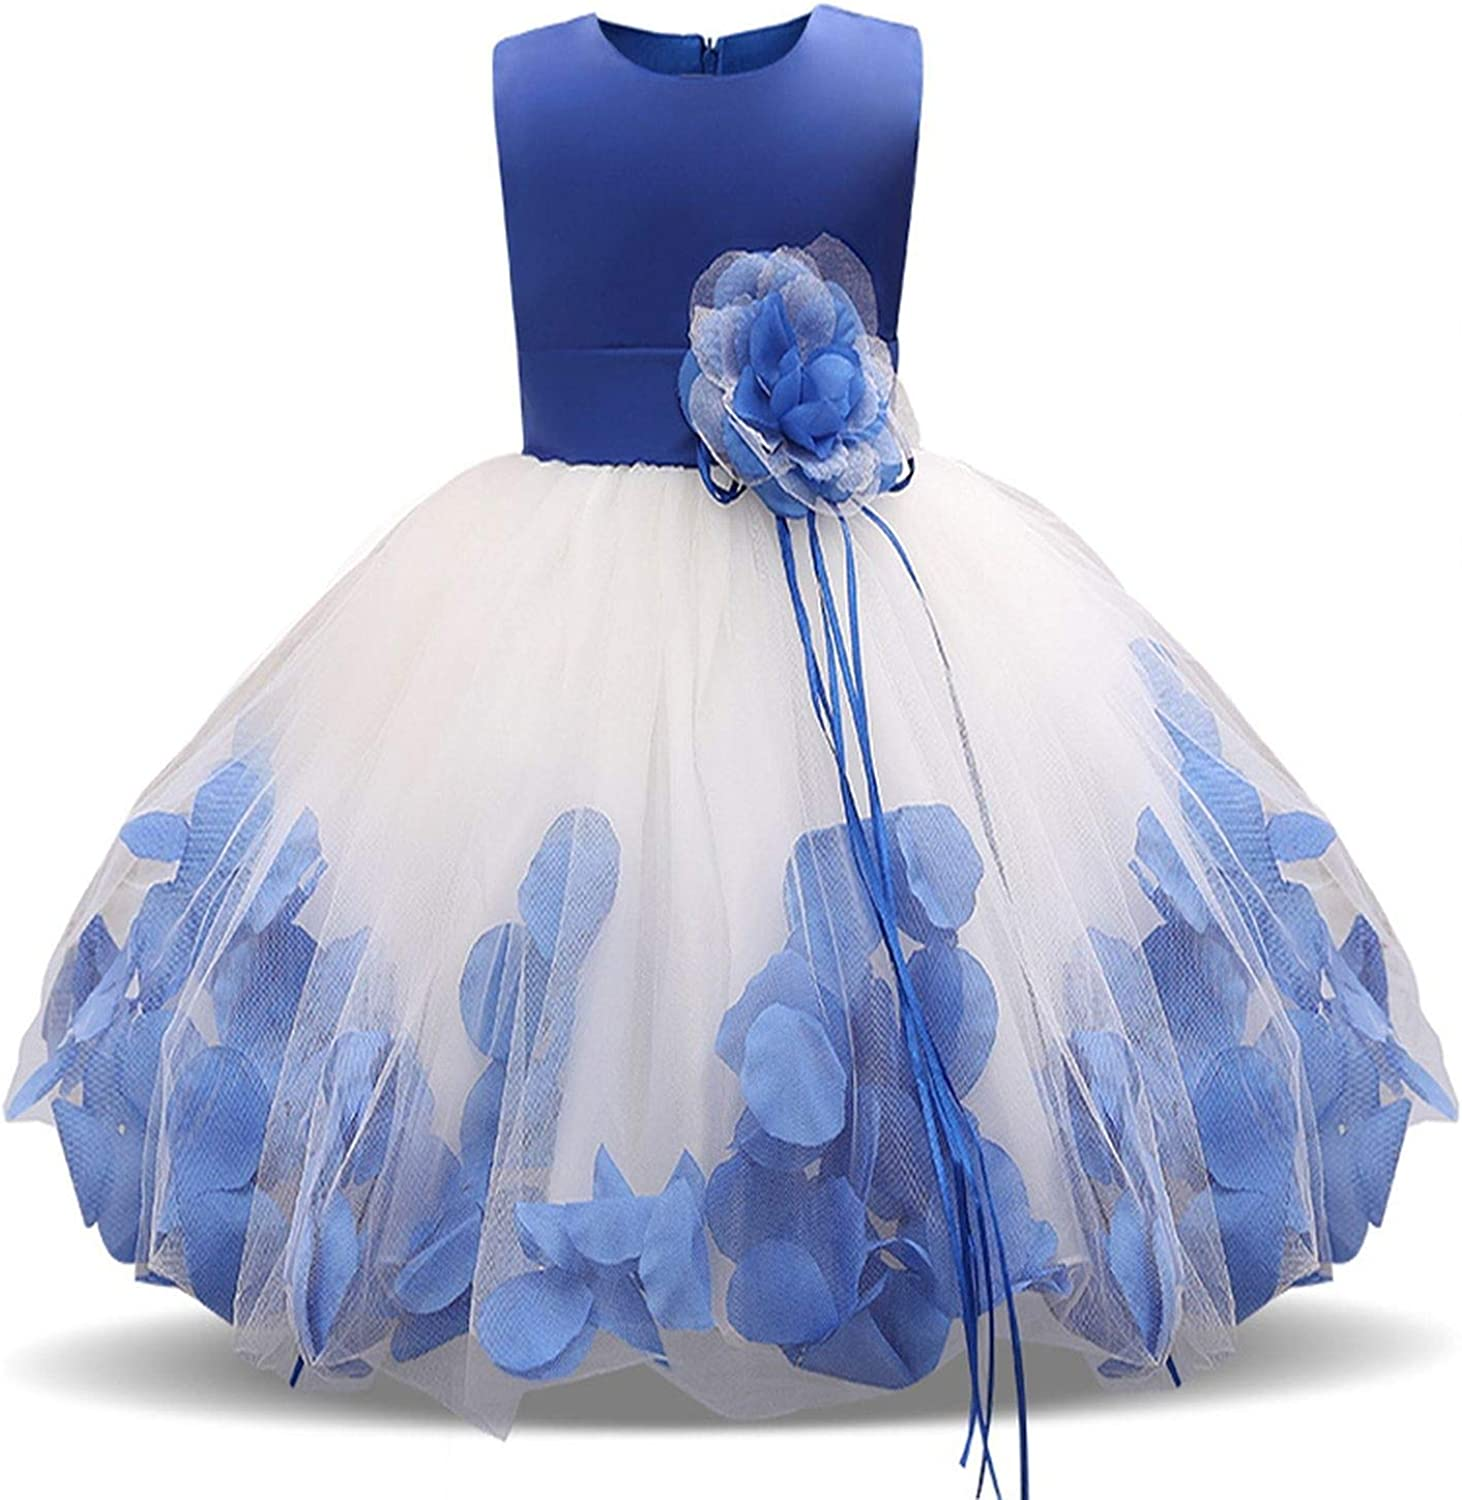 Bluecandy 4-10 Years Girl Summer Dress Kids Clothes Flower Girls Dress for Wedding Events Party Ball Gown Children Clothing